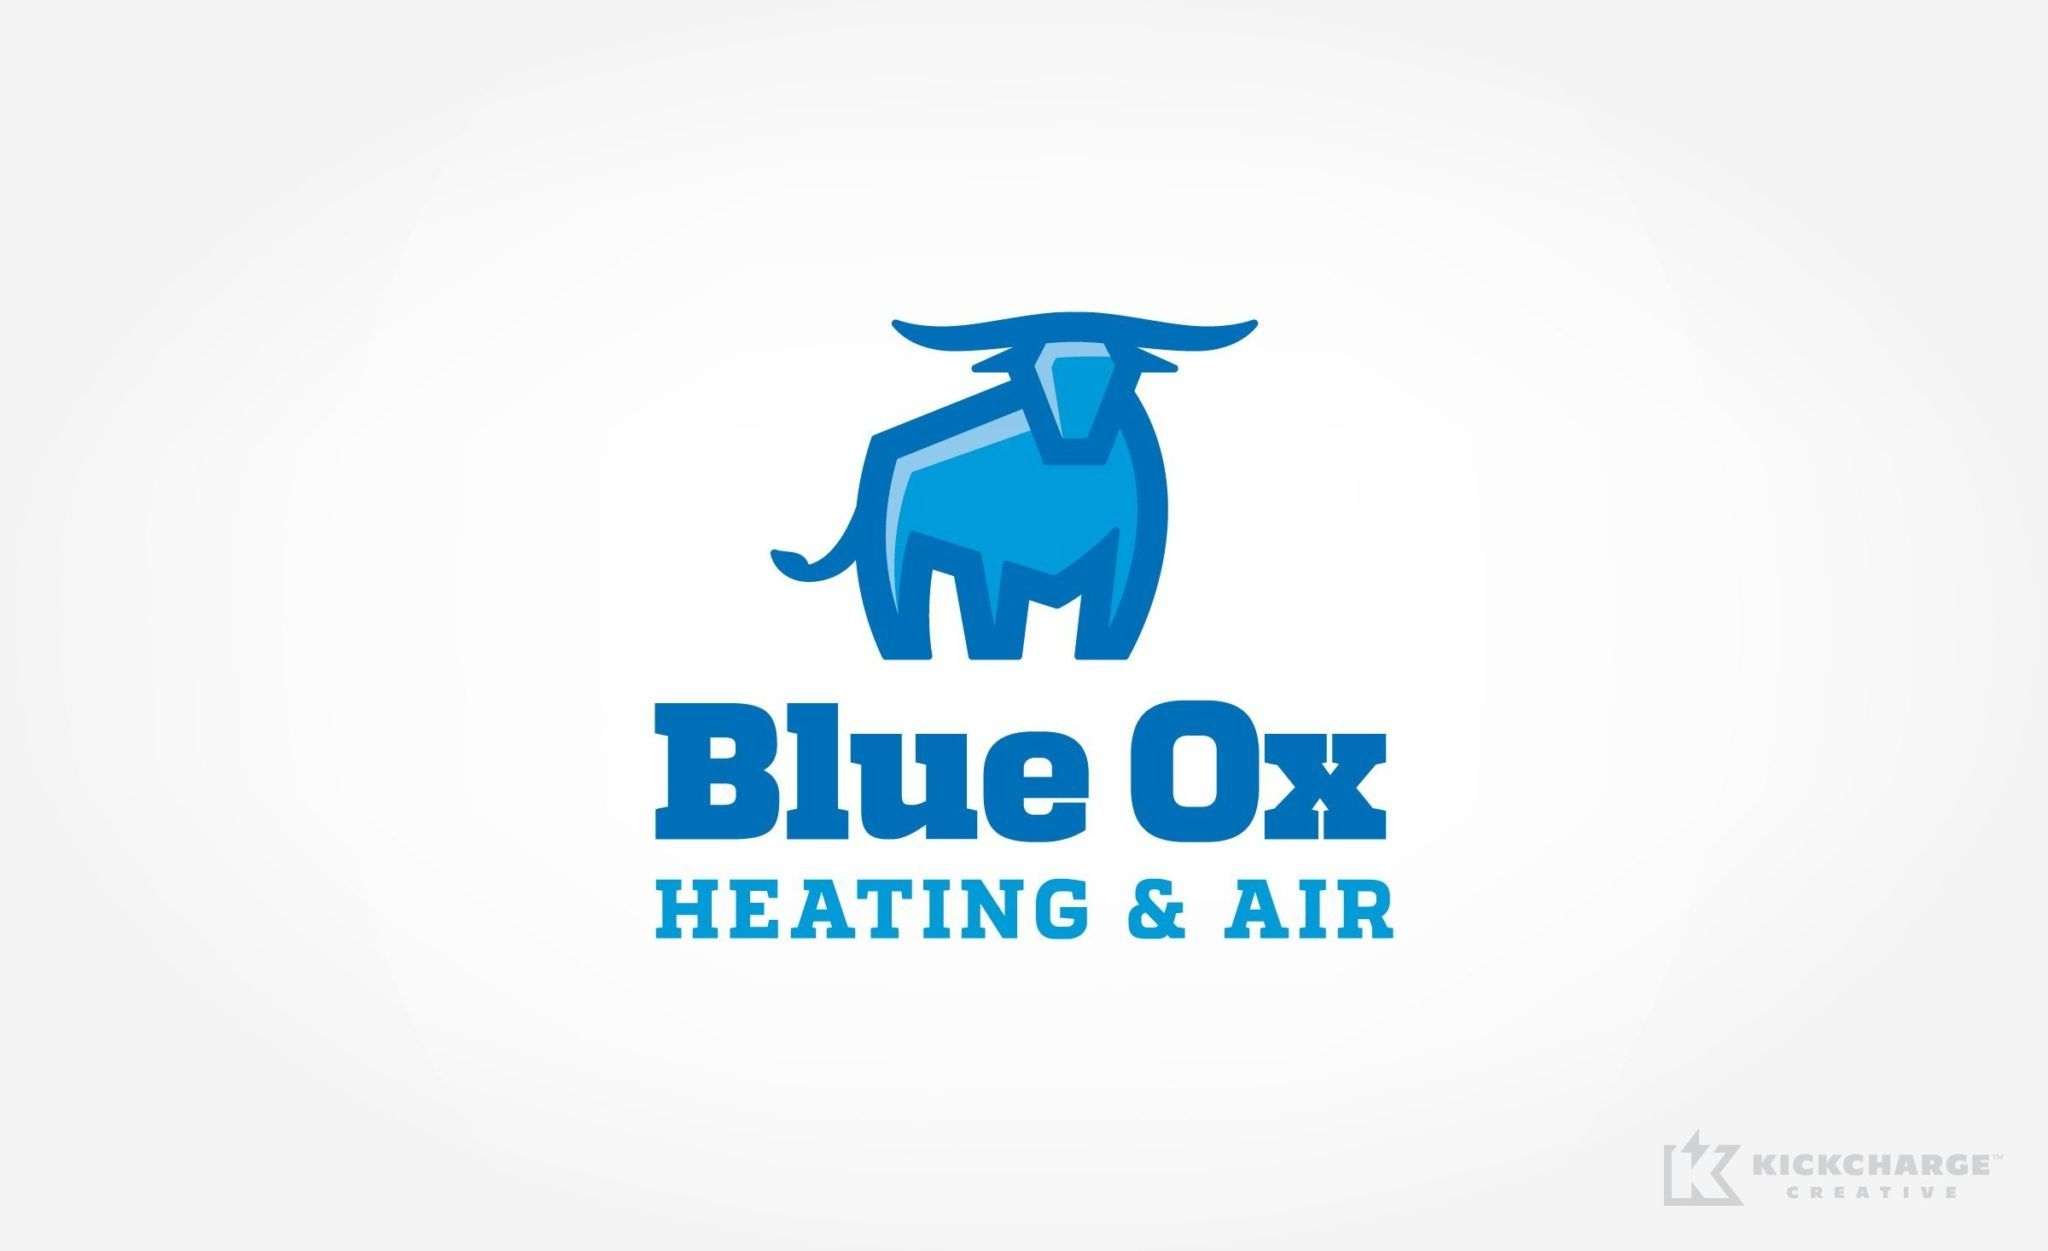 Blue Ox Heating Air Small Business Logo Design Small Business